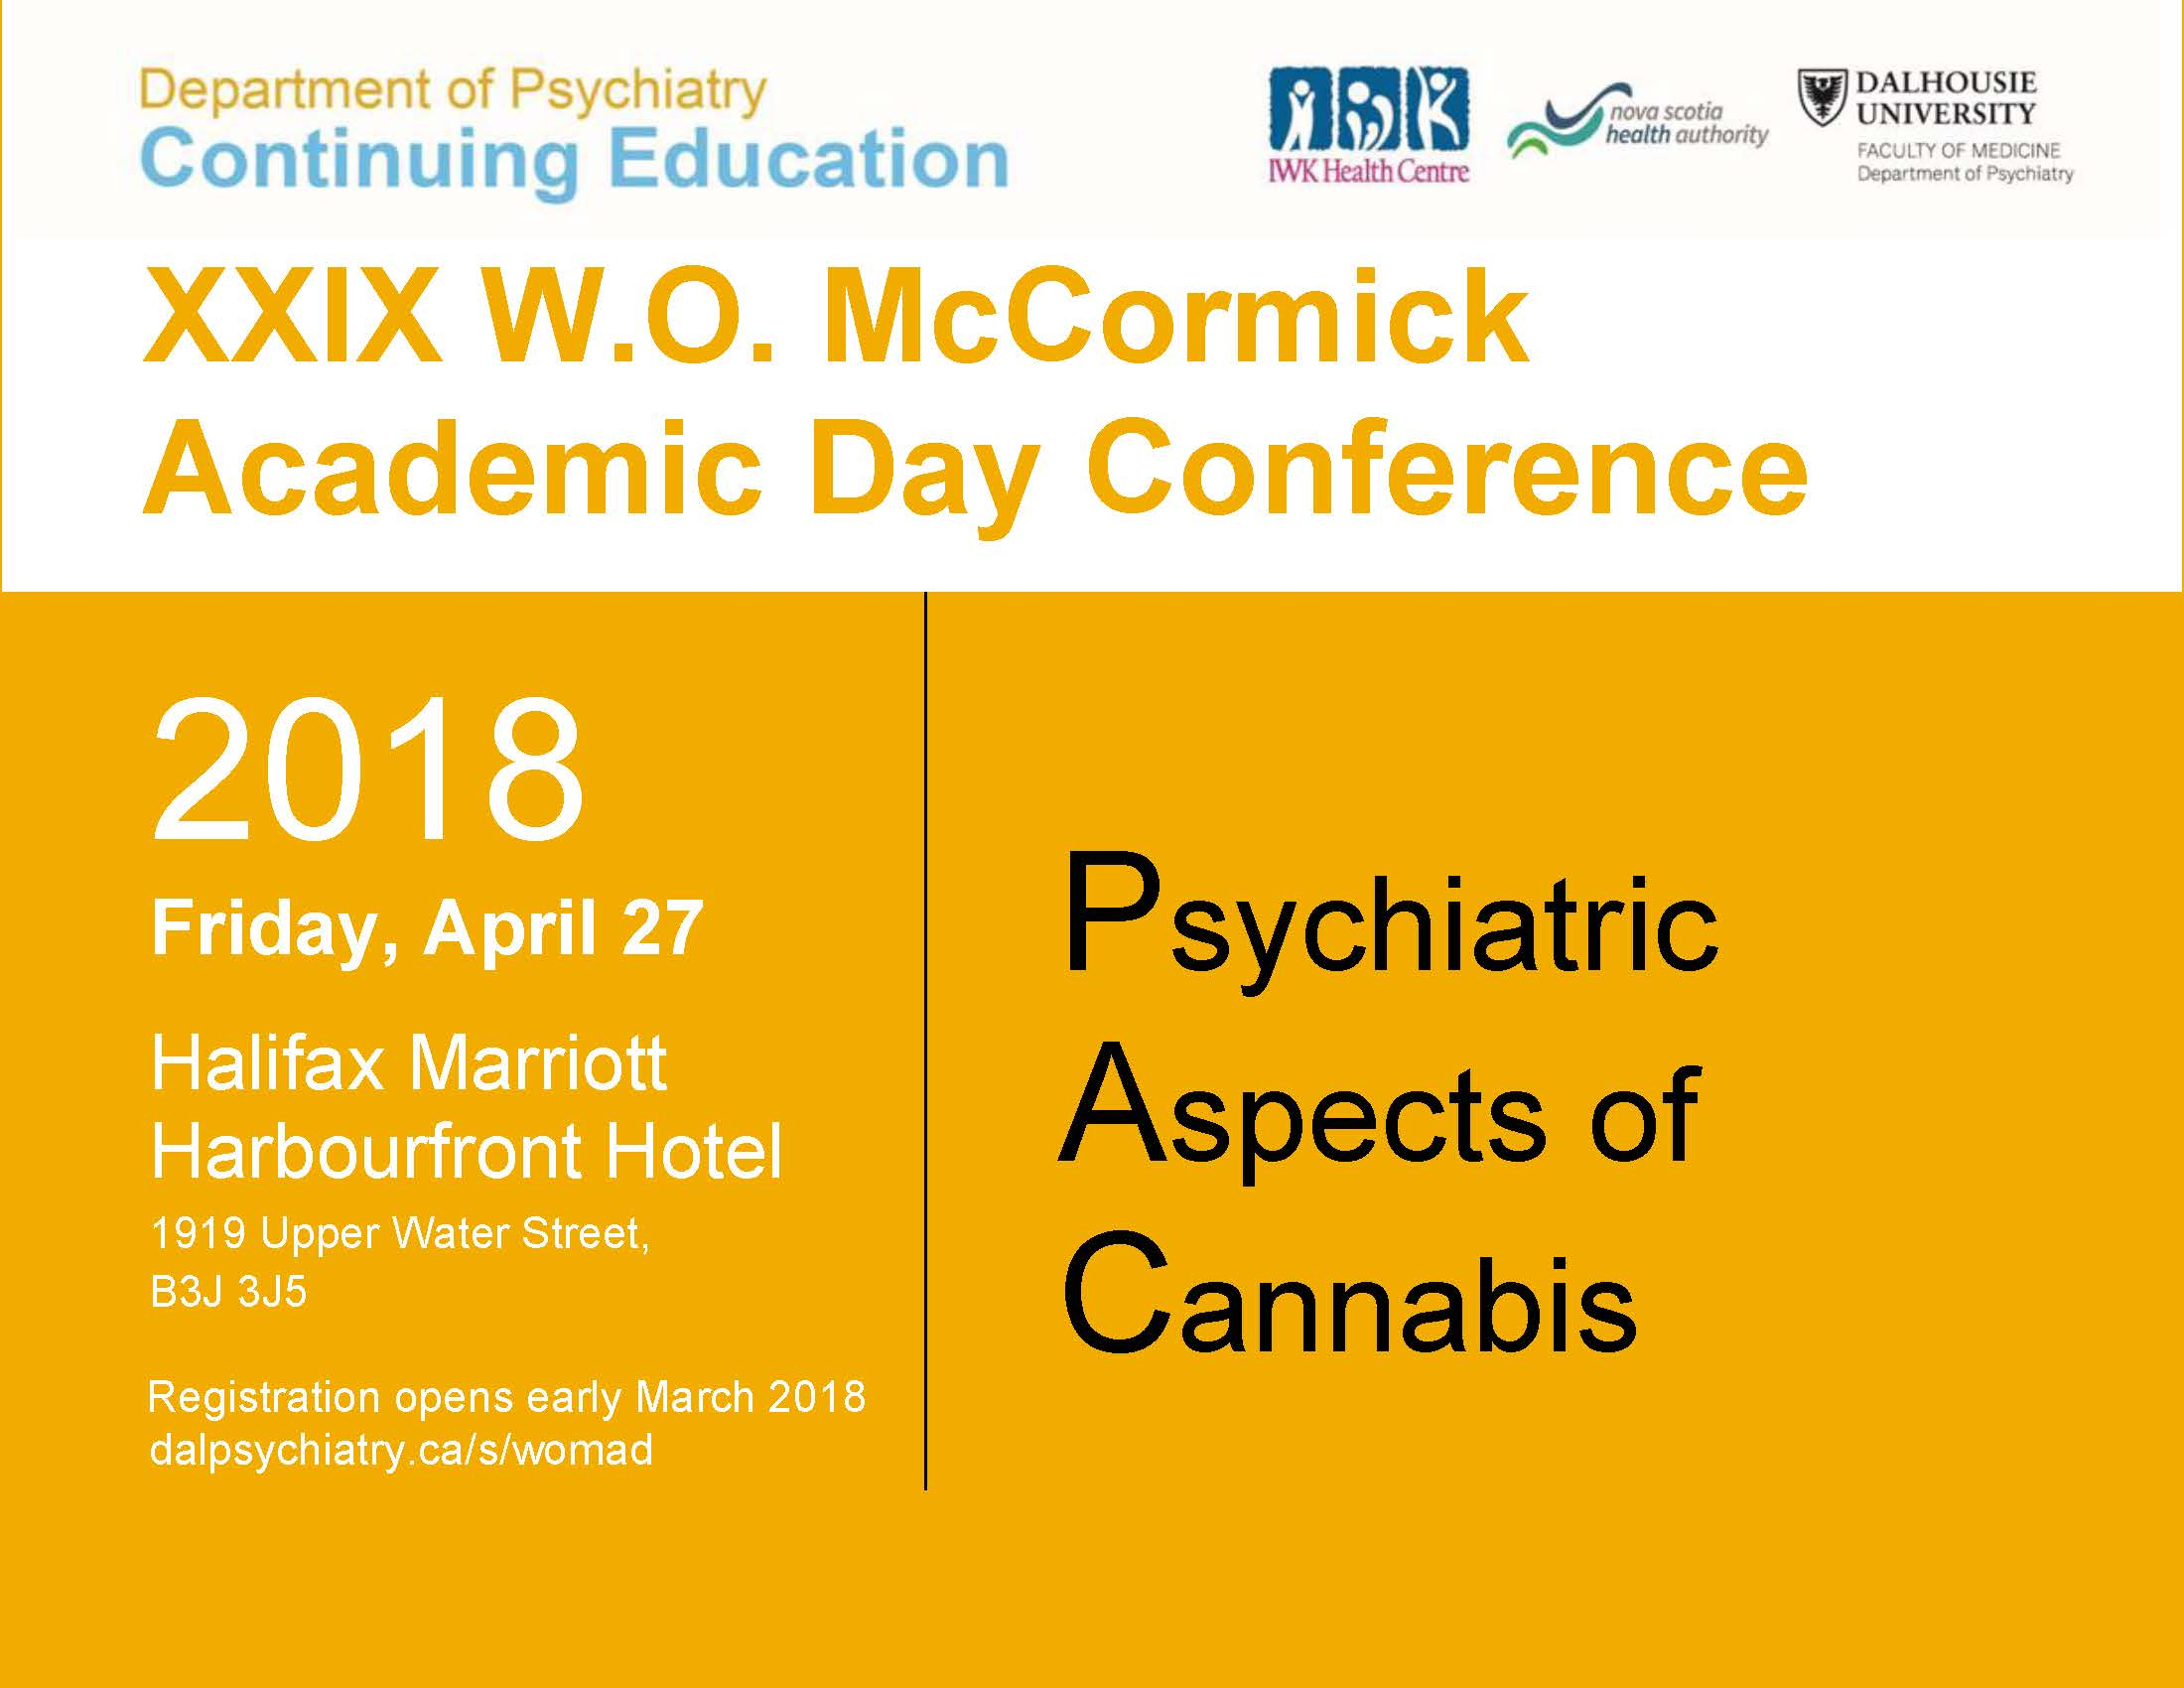 XXIX W.O. McCormick Academic Day Conference